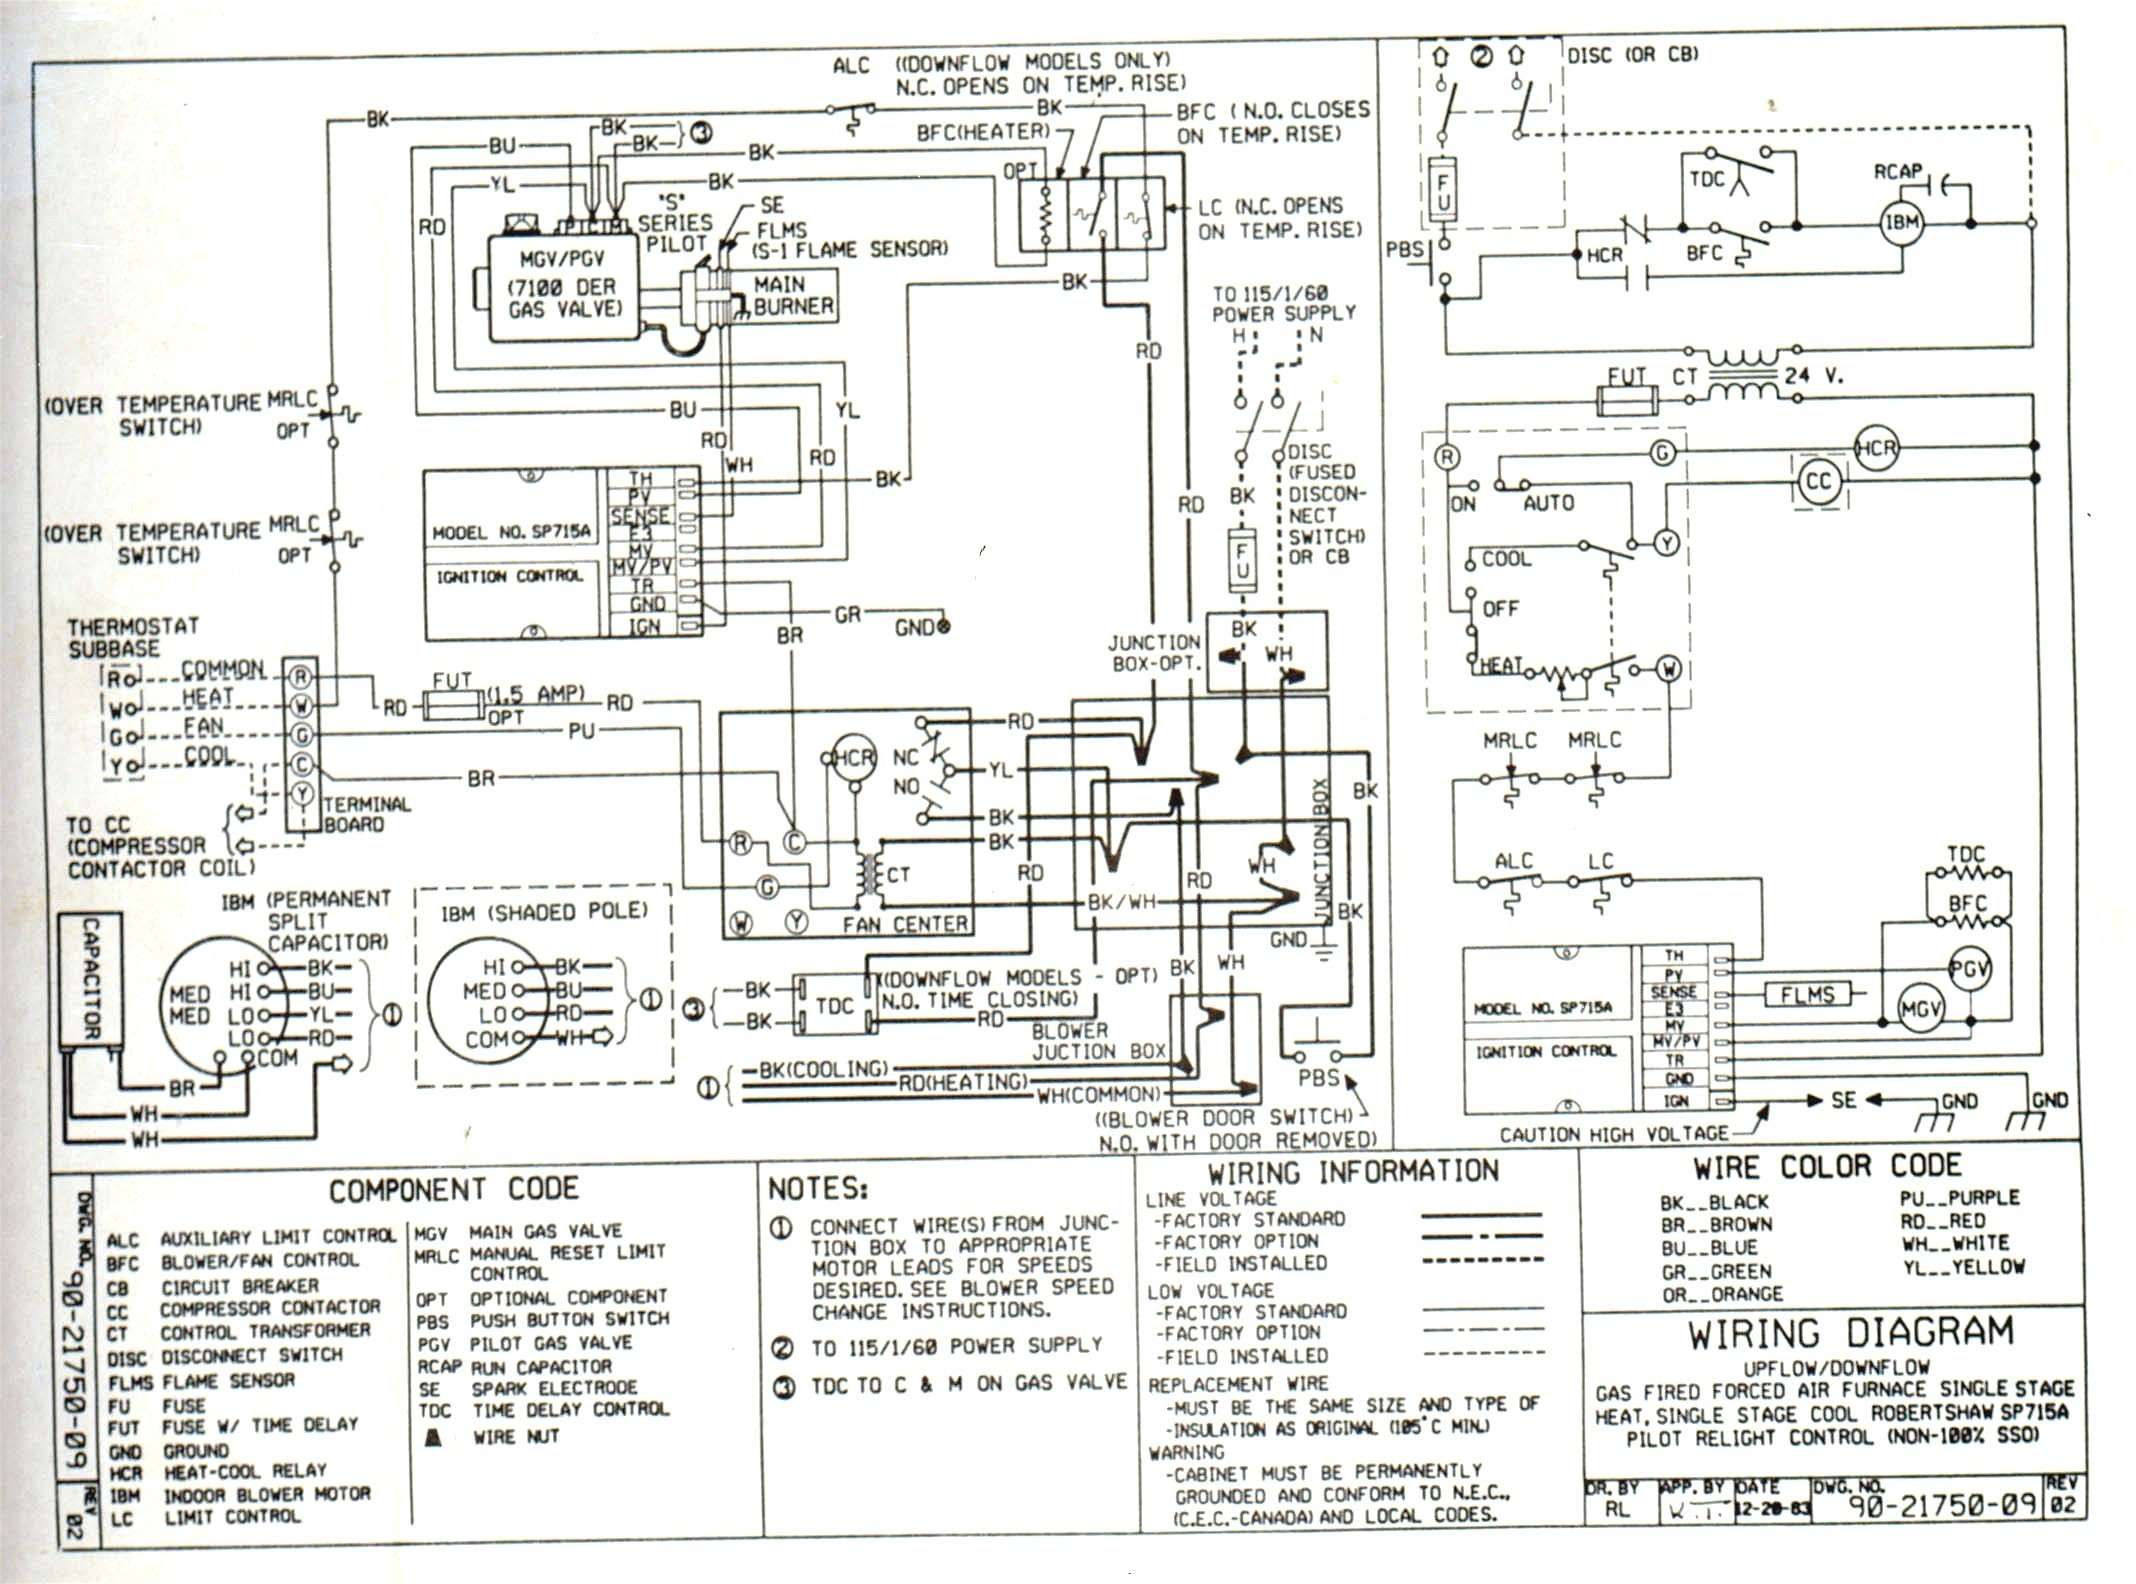 Wiring Diagram For A Honeywell Thermostat